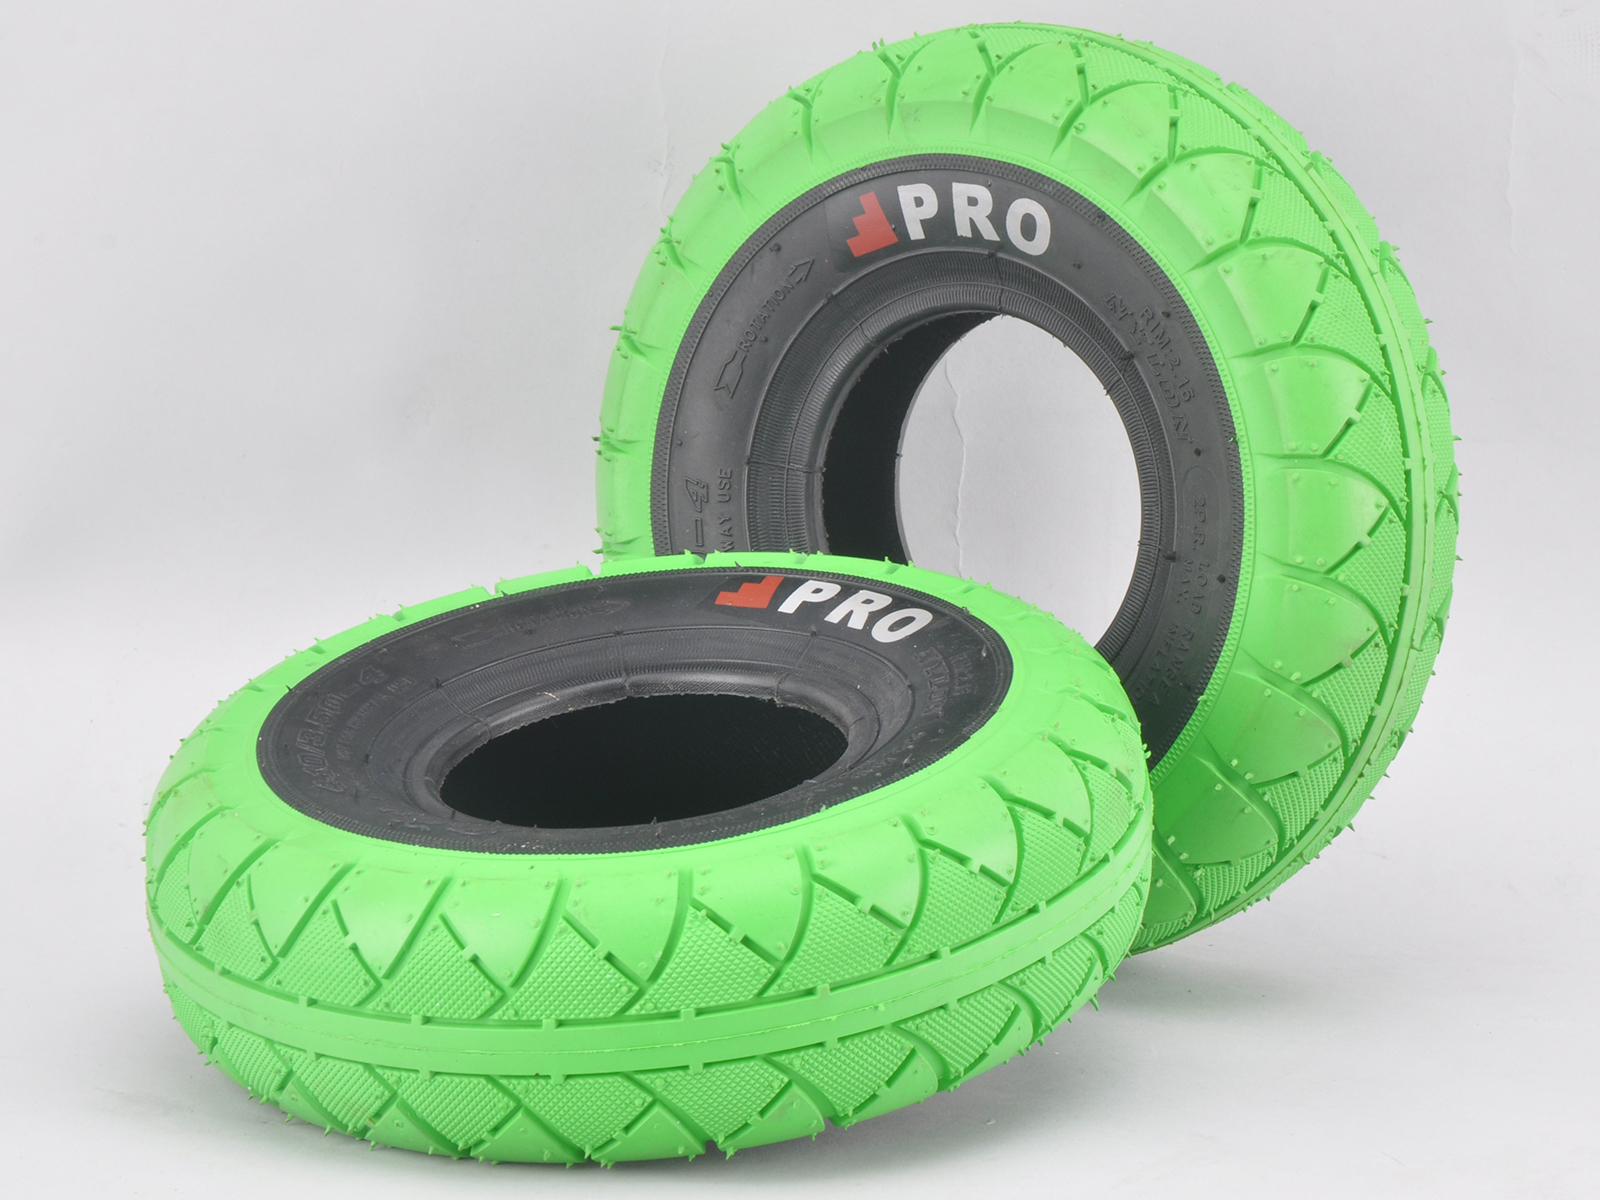 http://www.rockerbmx.com/images/stories/virtuemart/product/STREETPROTYREGREENBLACK%202.jpg